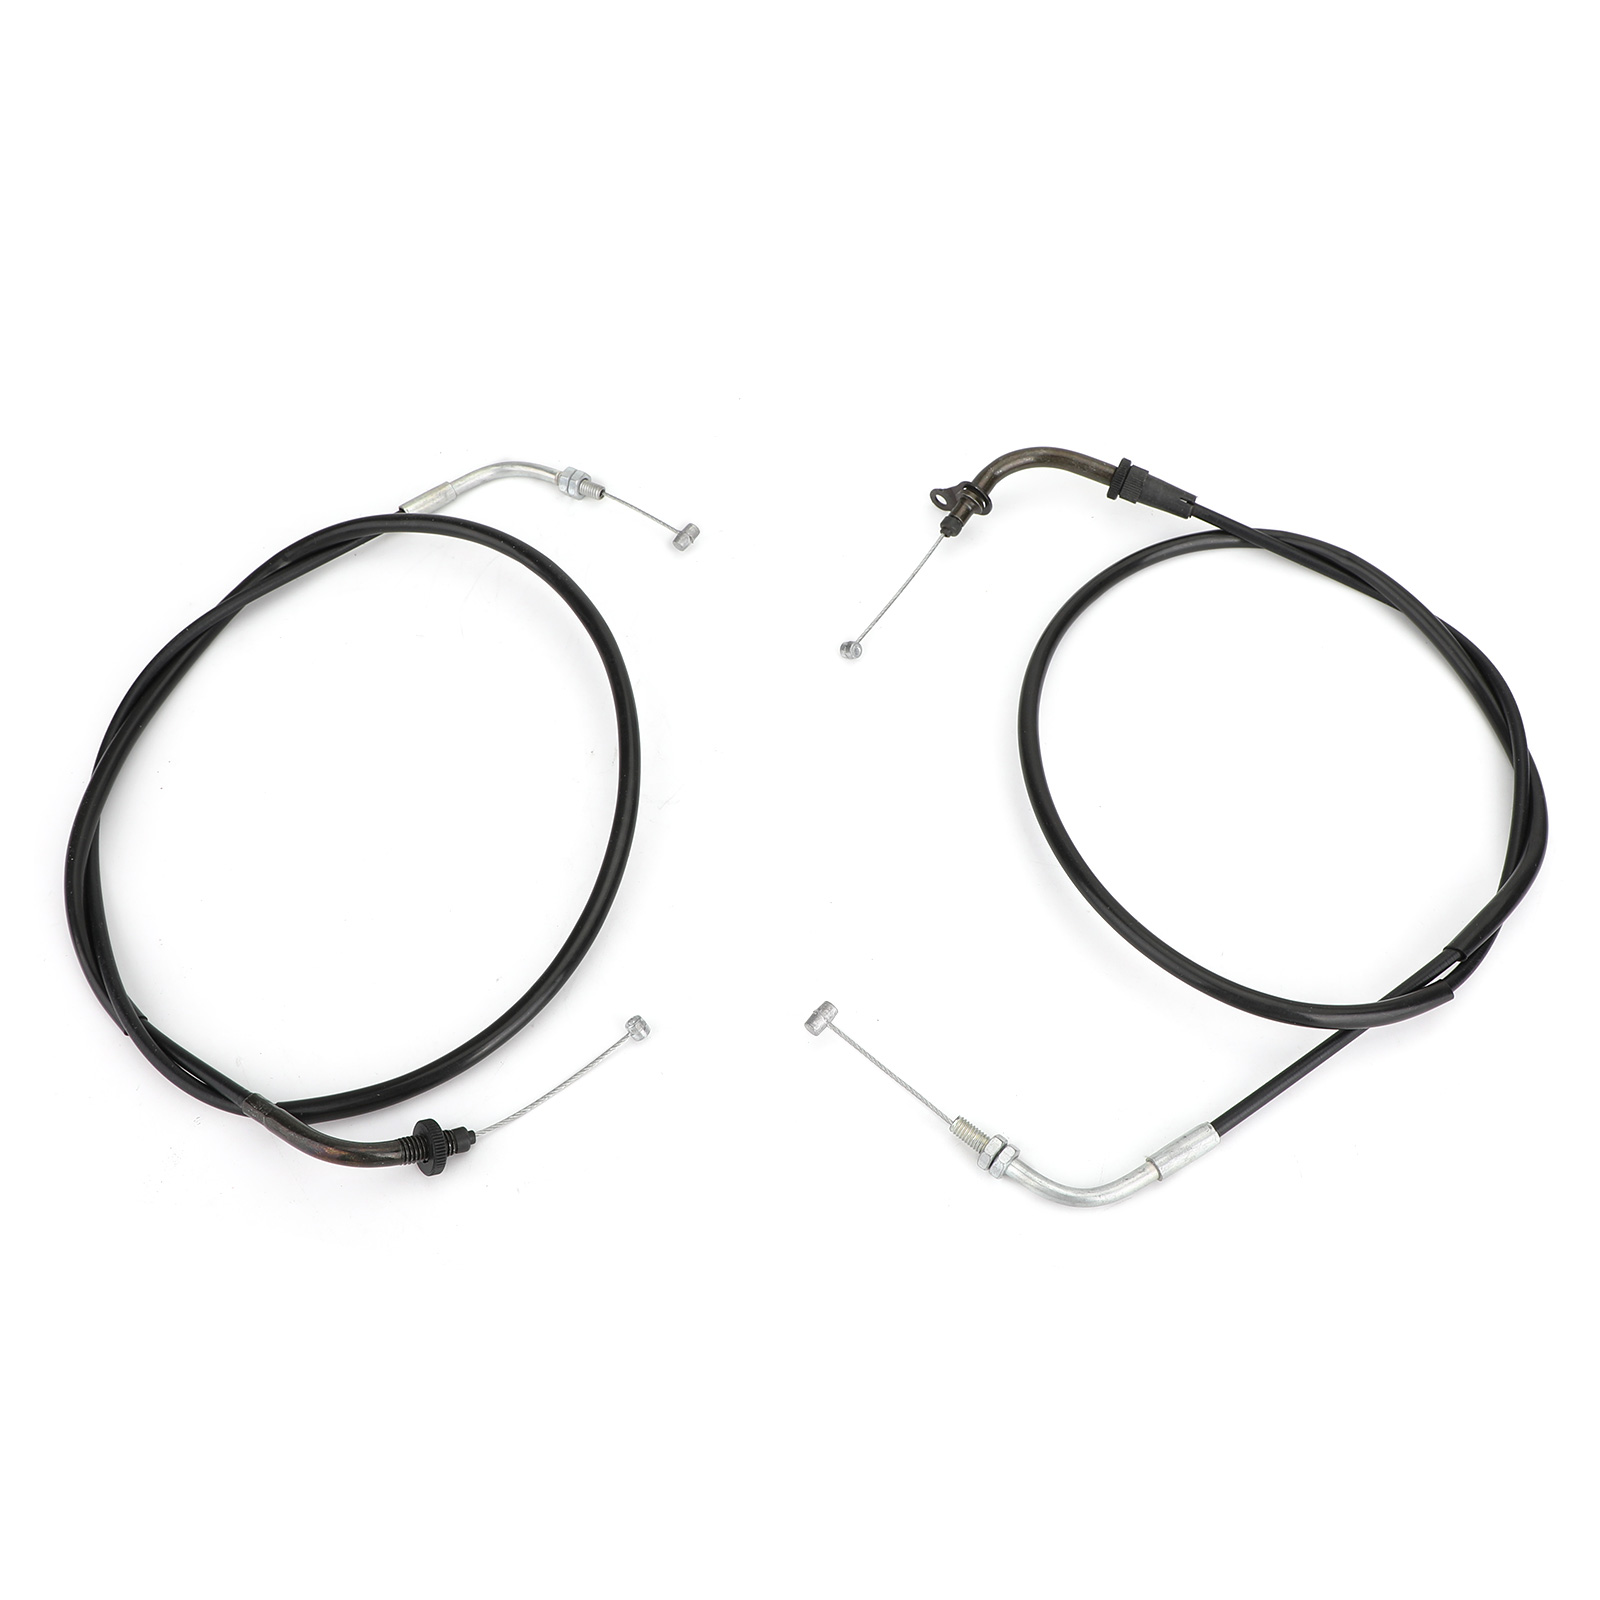 Moto Throttle Cable Wires 5PB-26311-10 Fit Yamaha V-Star